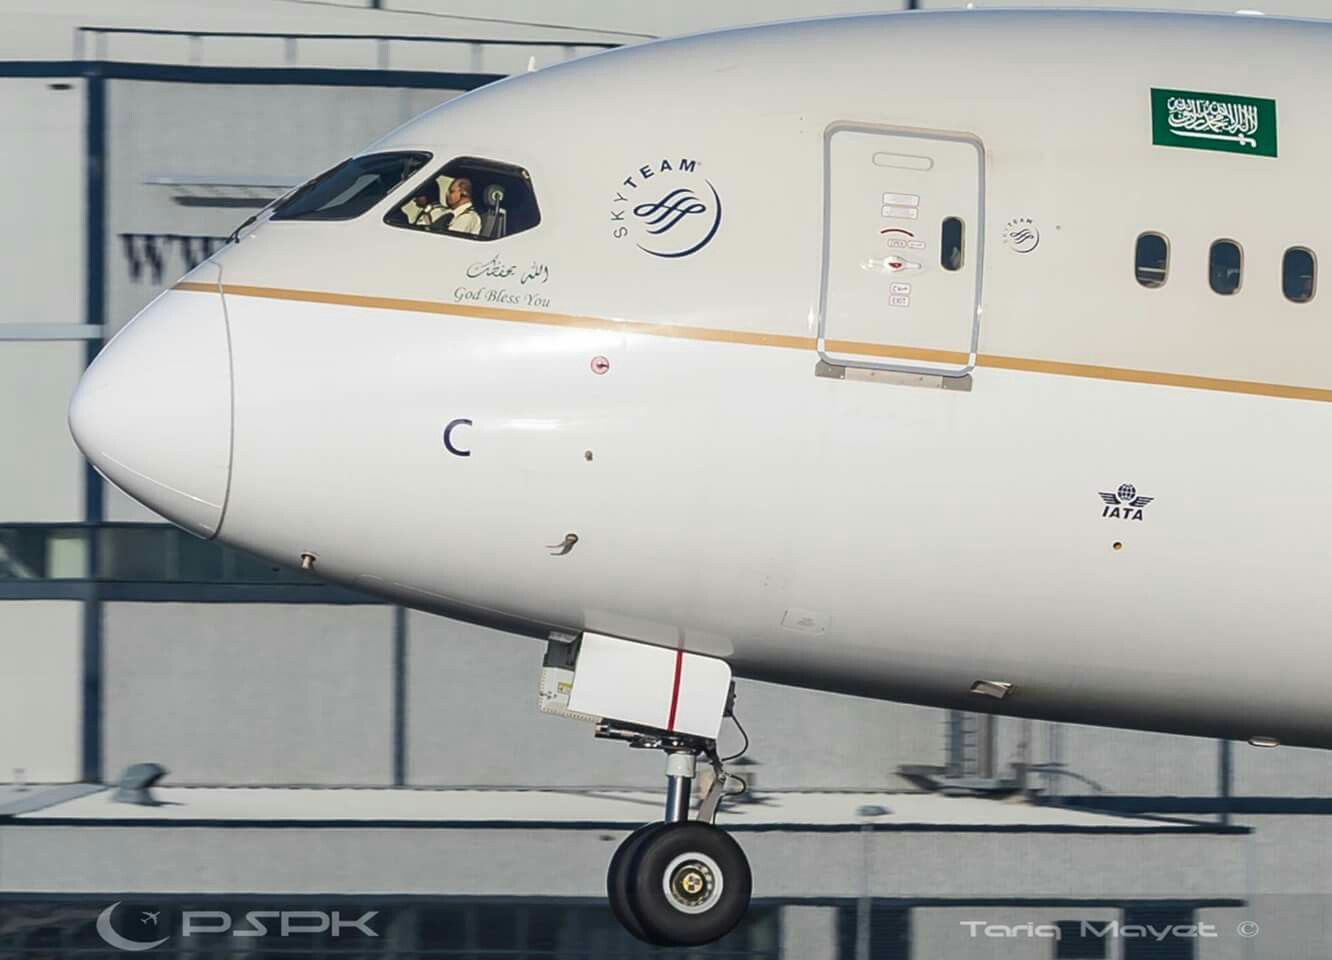 Pin by Ali Owais on airliners Passenger jet, Aircraft